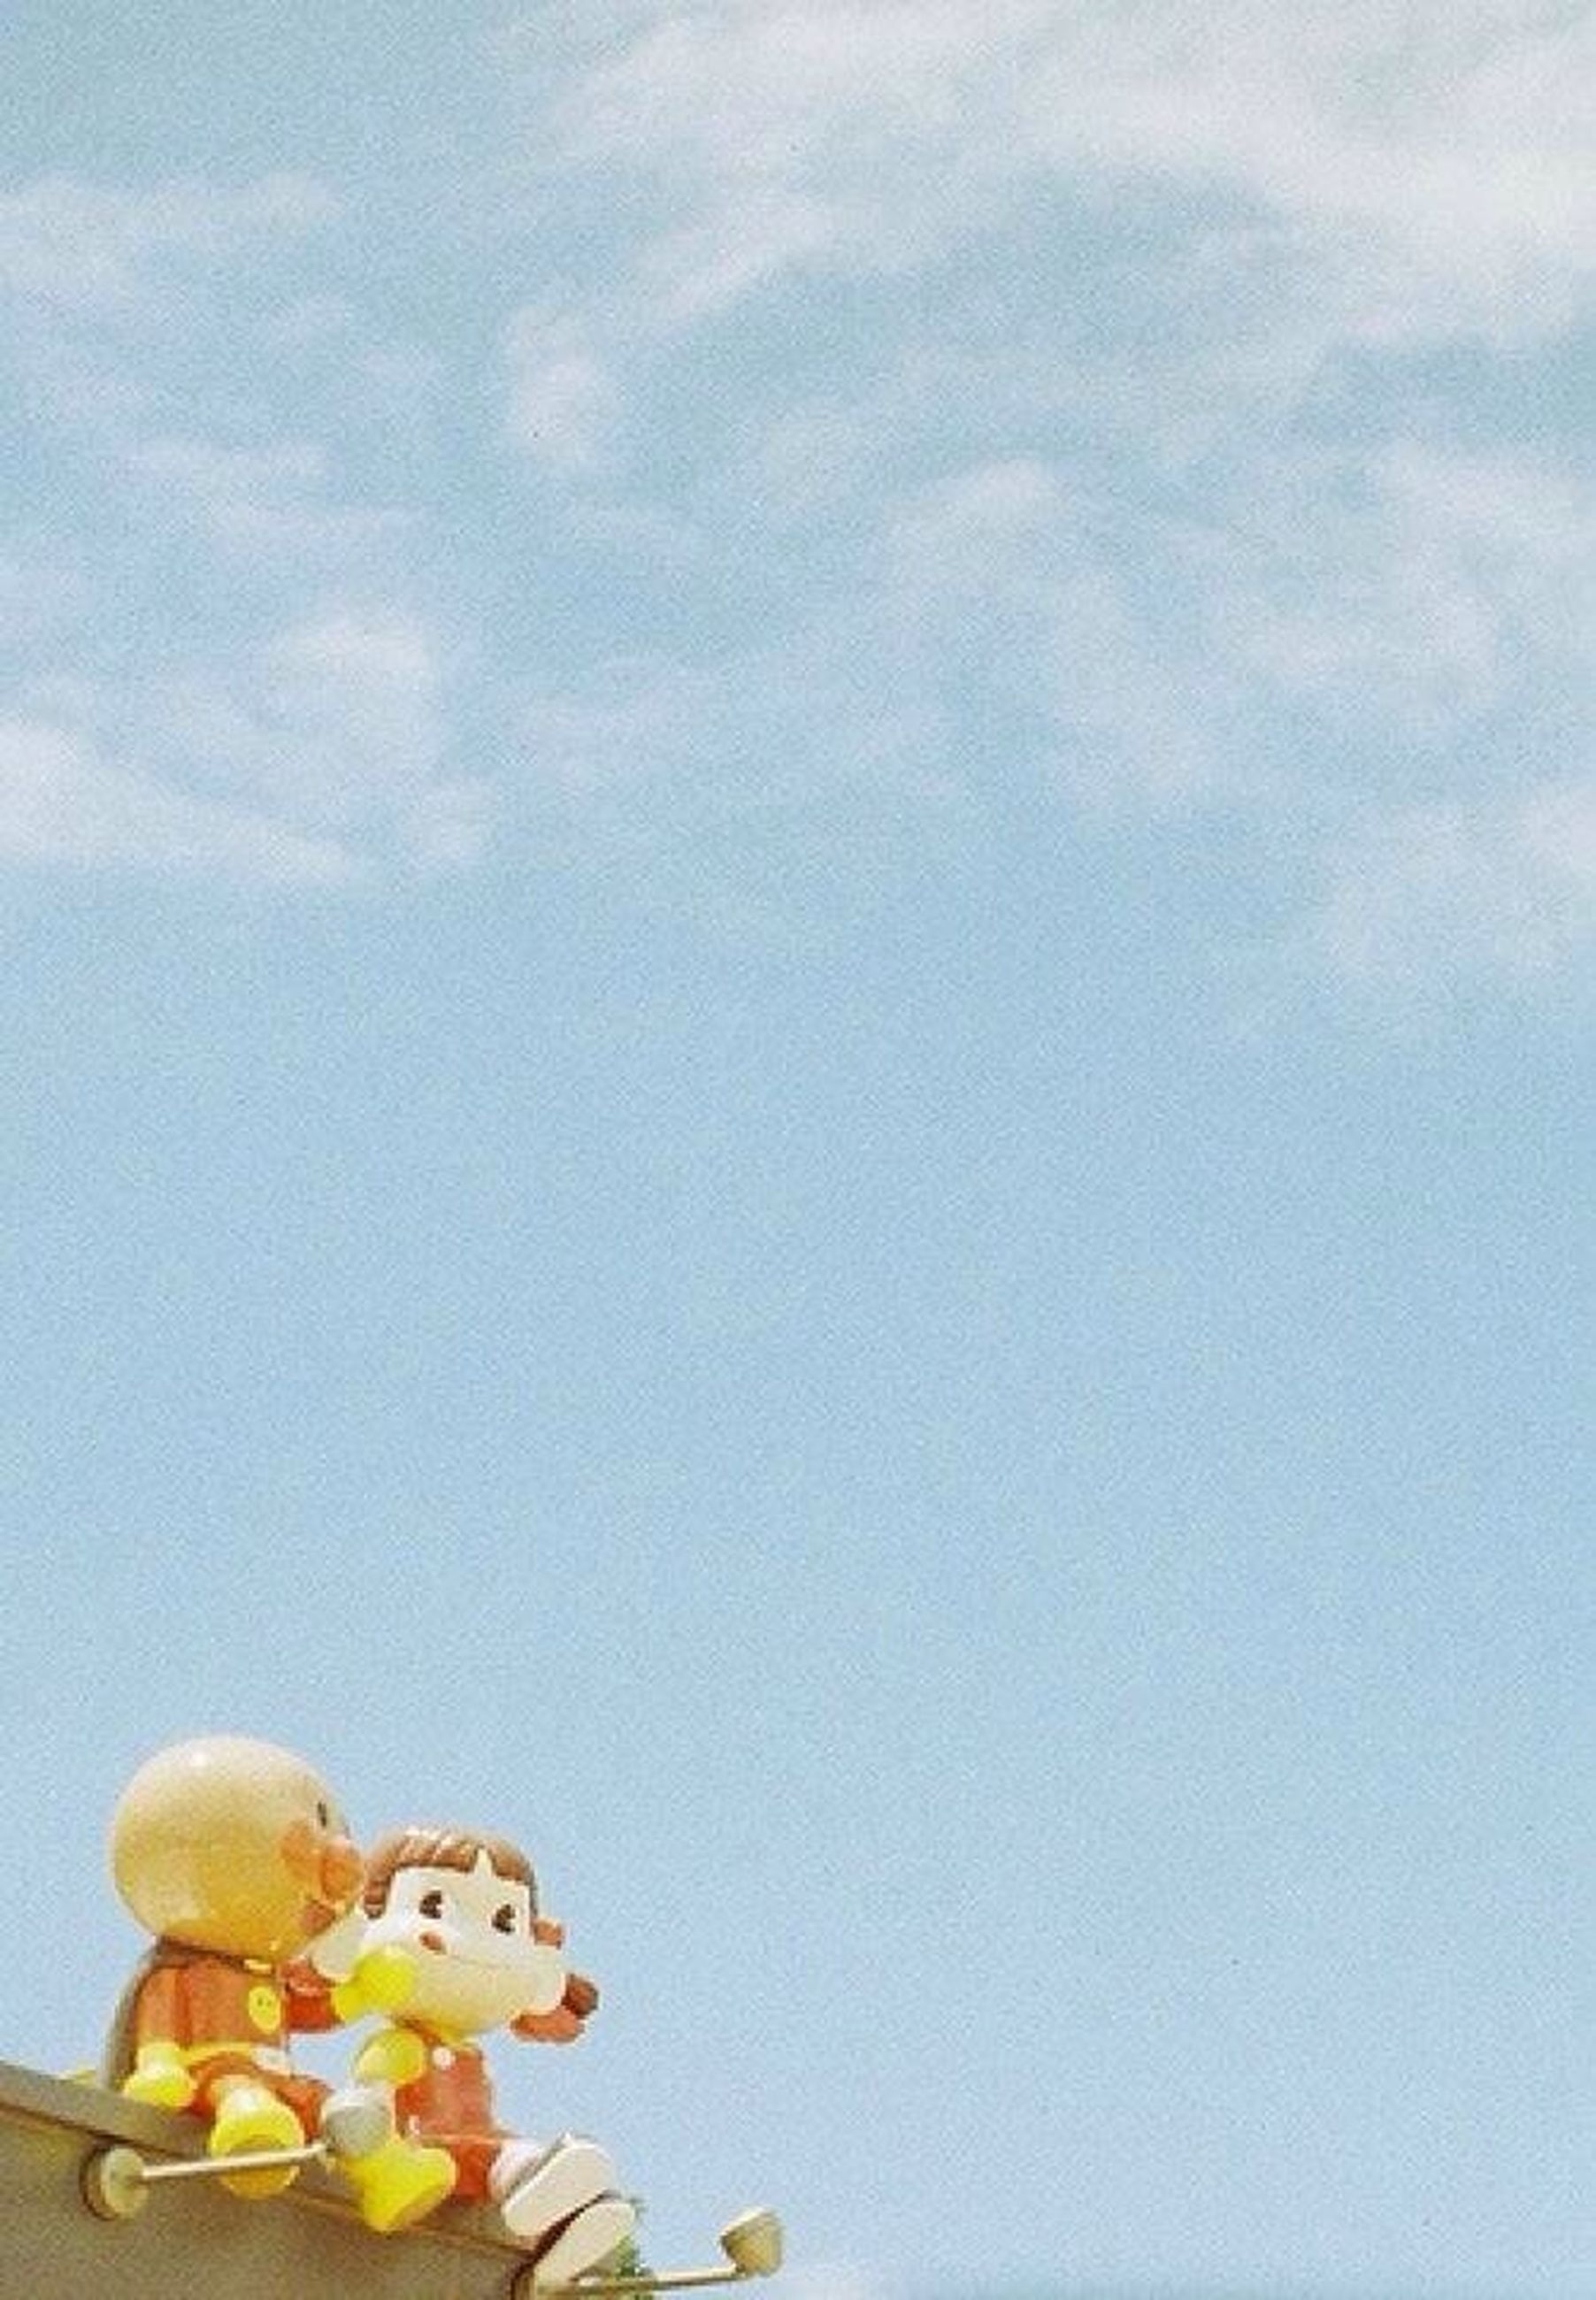 sky, low angle view, copy space, multi colored, yellow, toy, no people, day, variation, outdoors, blue, childhood, still life, cloud - sky, nature, large group of objects, art and craft, side by side, creativity, wall - building feature